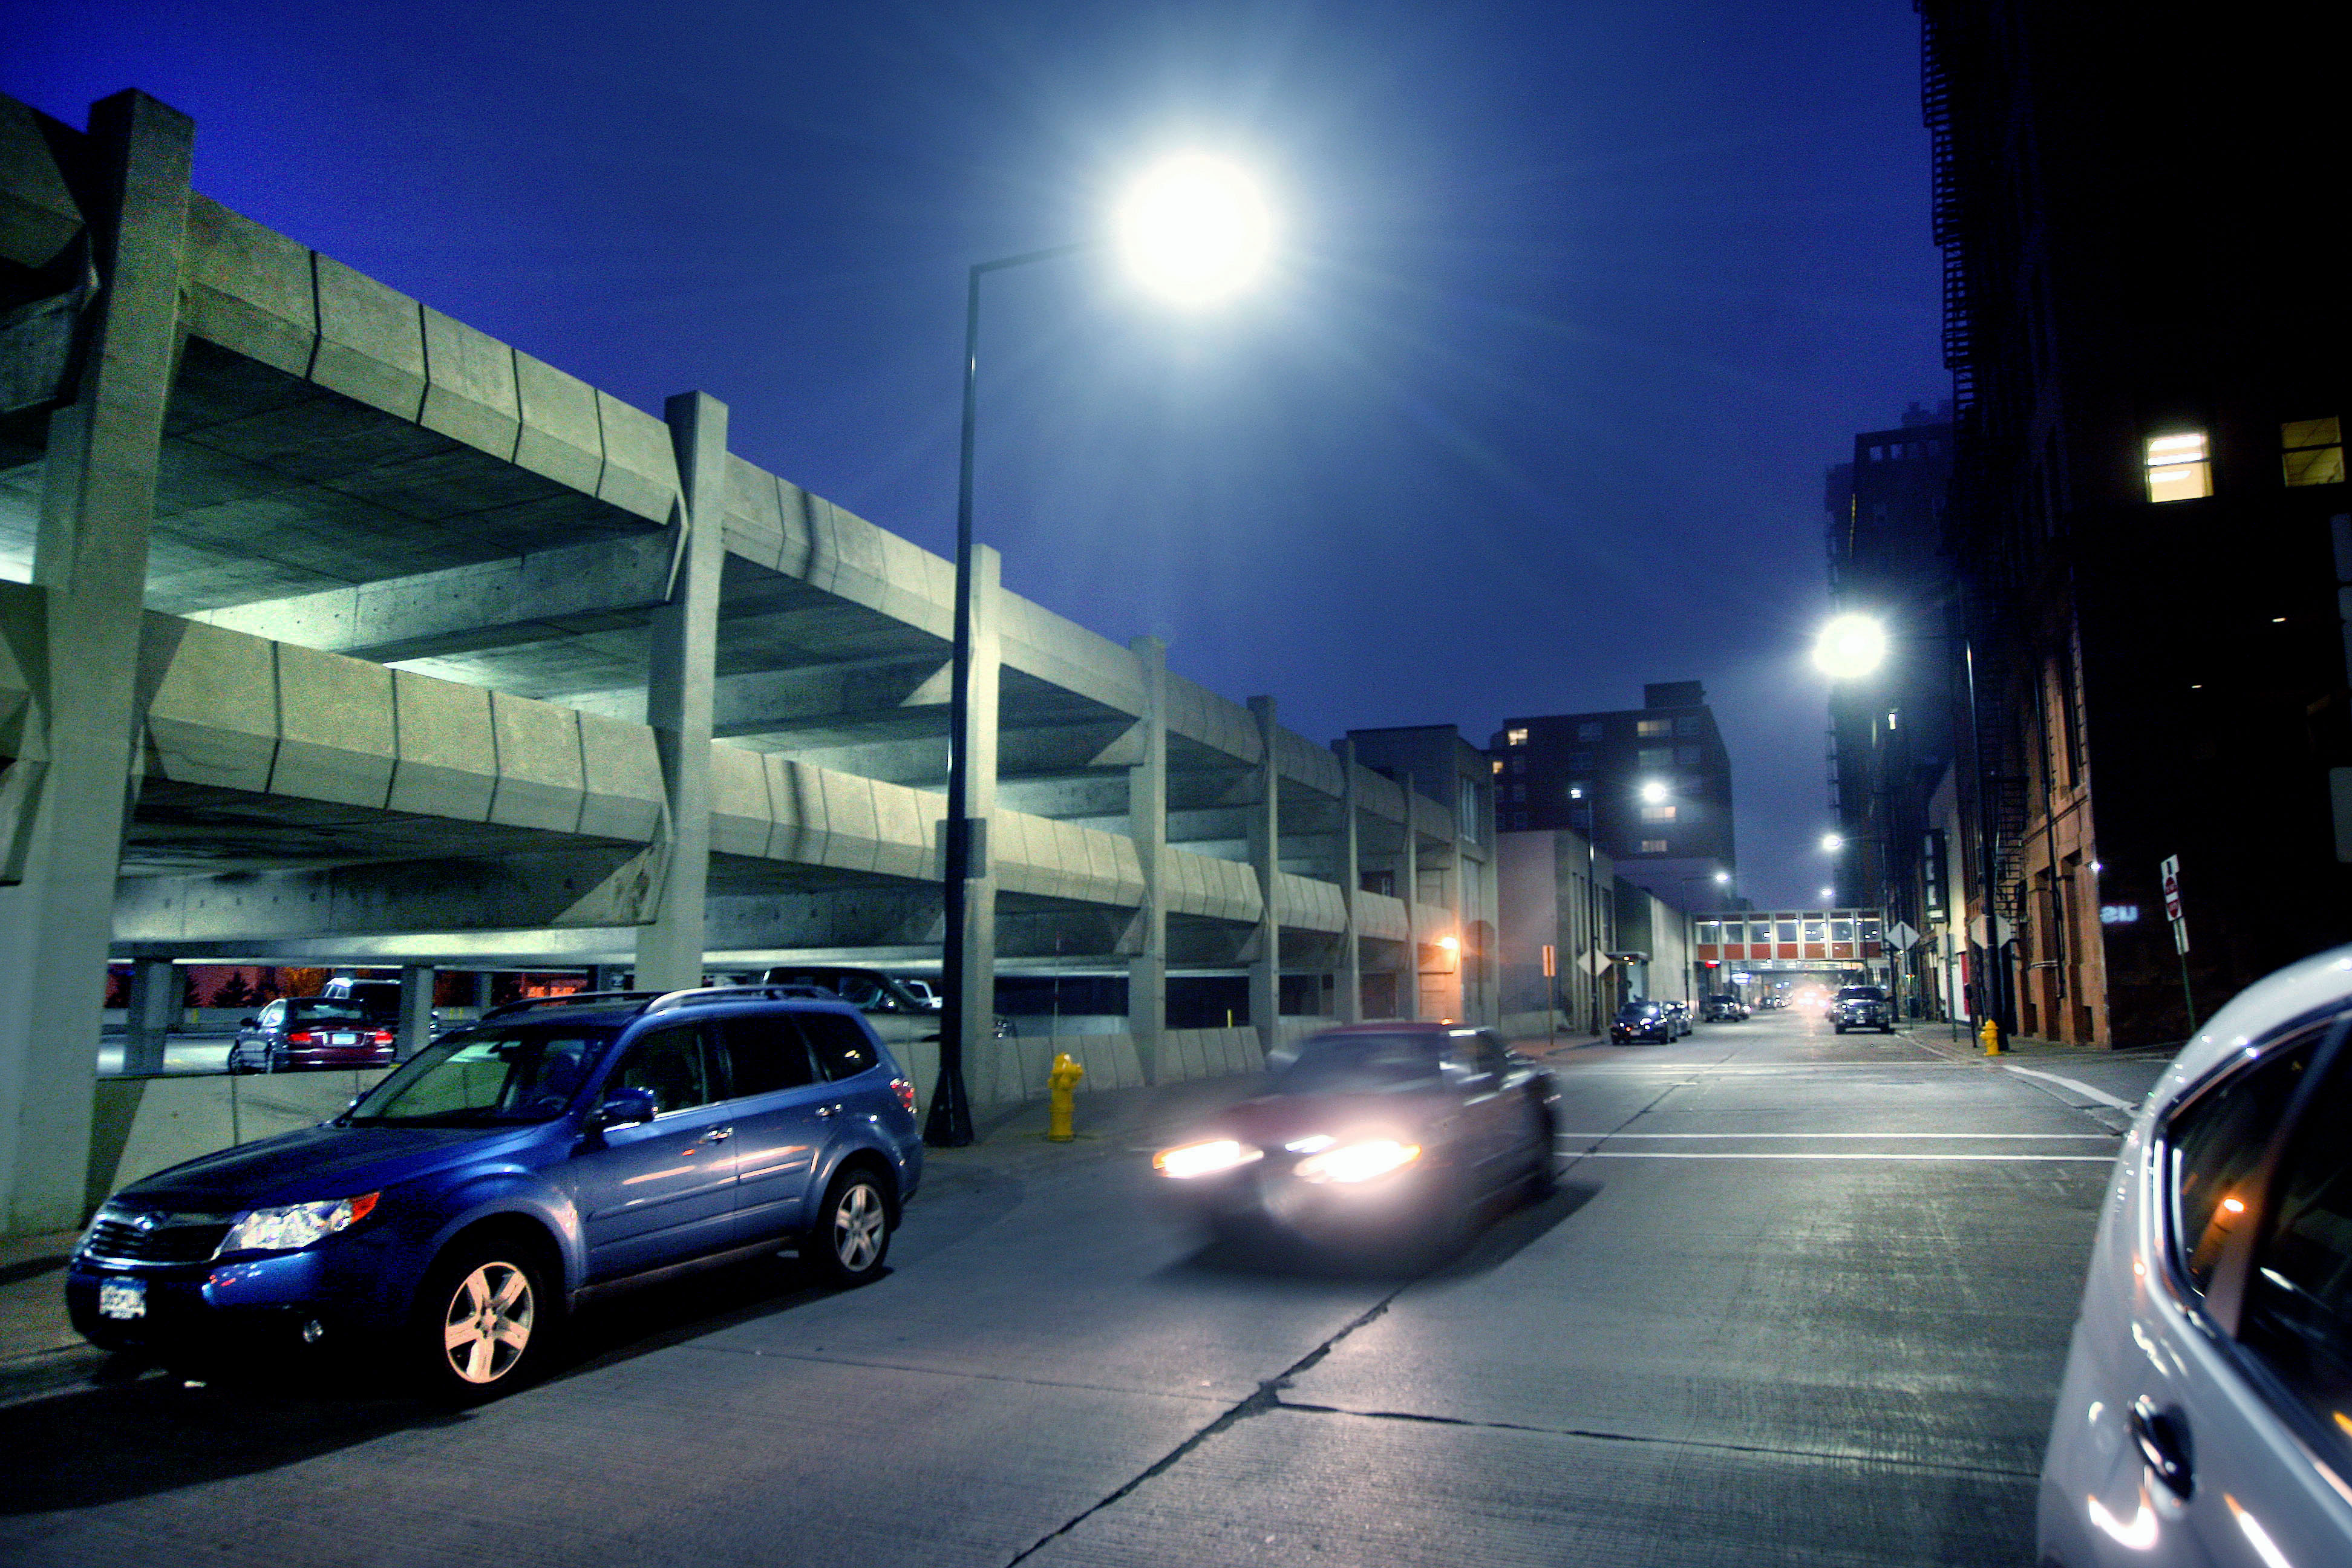 Leds Light Pollution Solution Or Night Sky Nemesis